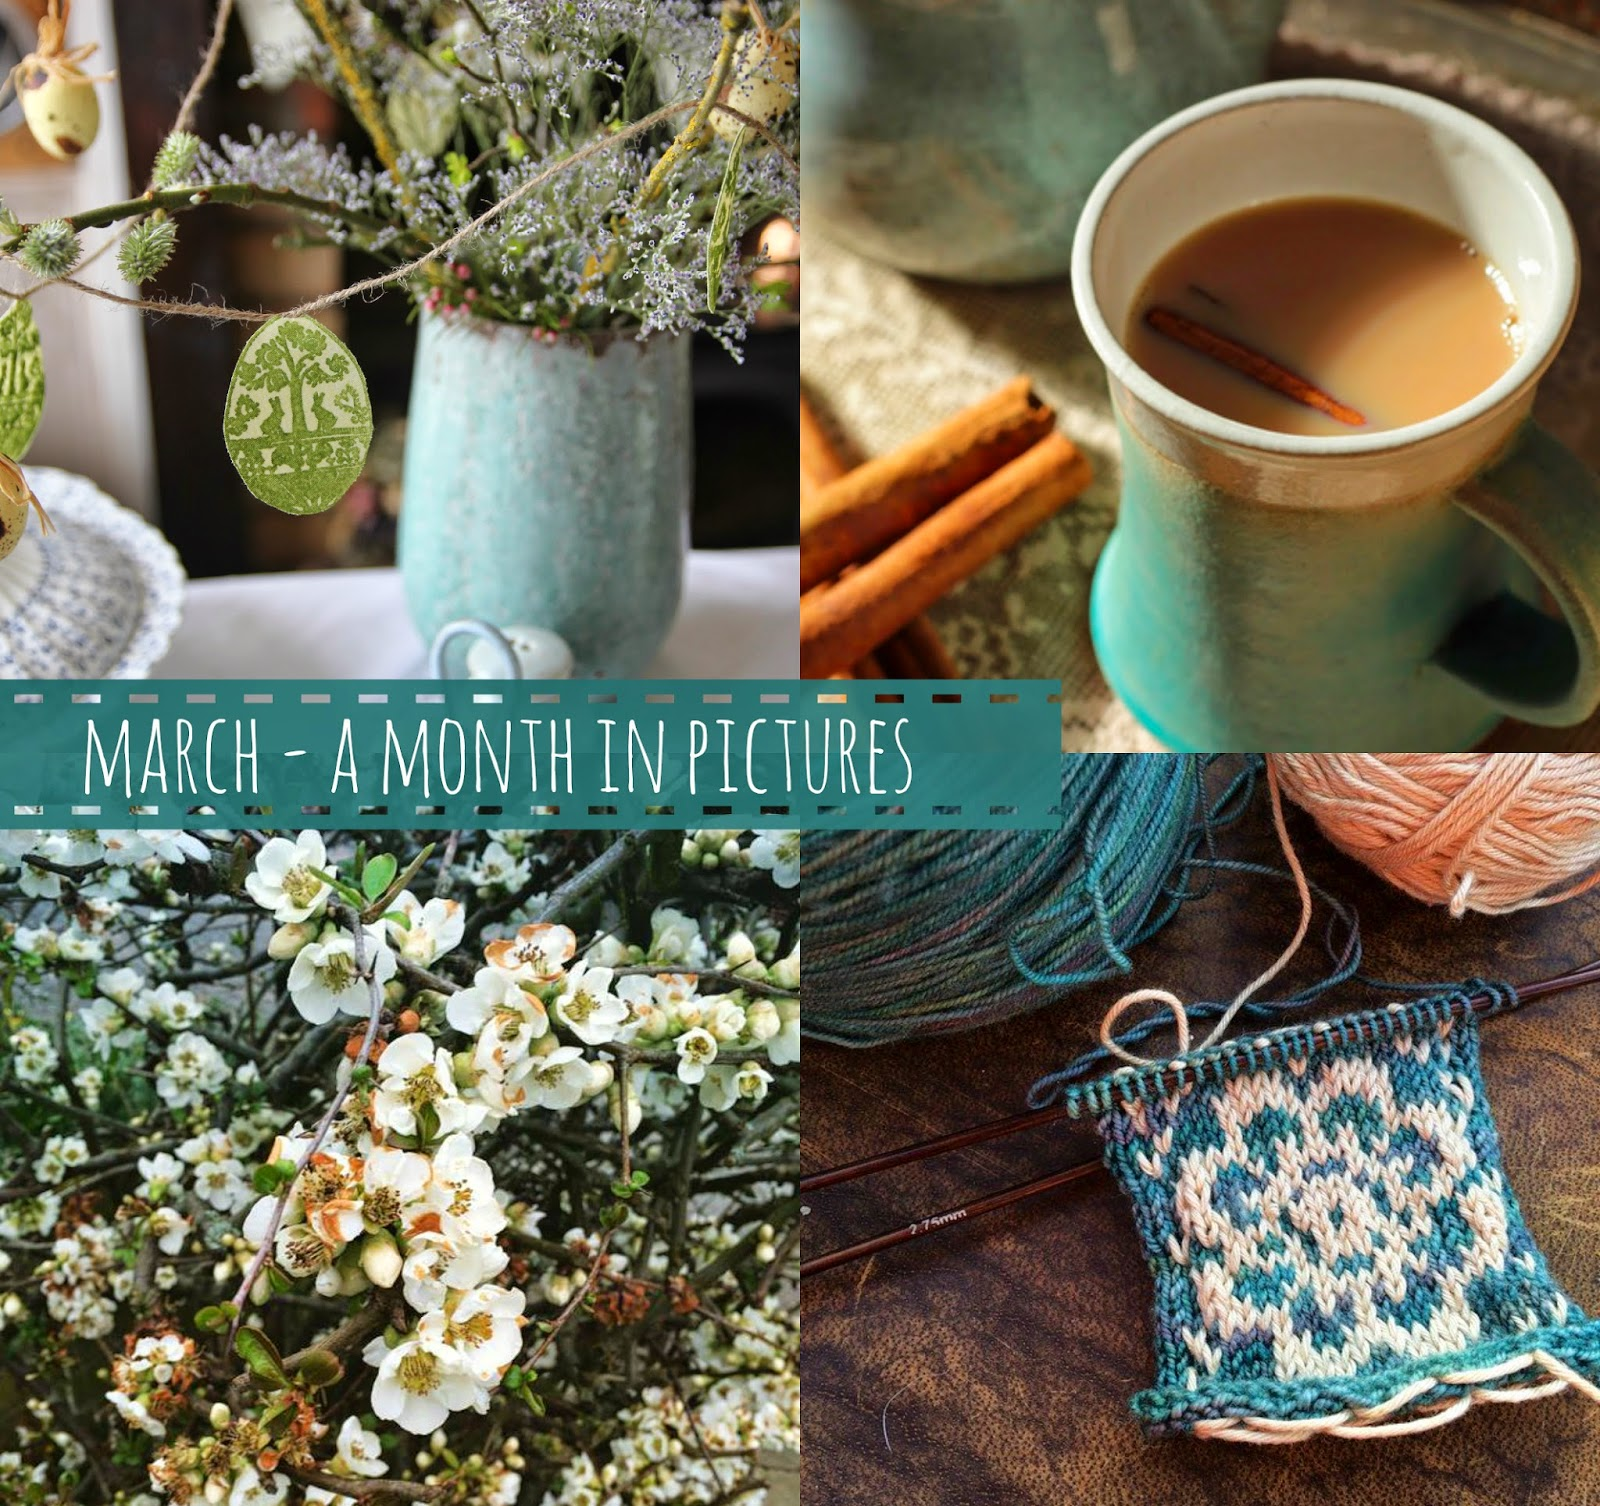 March - A month in pictures - A Handmade Cottage